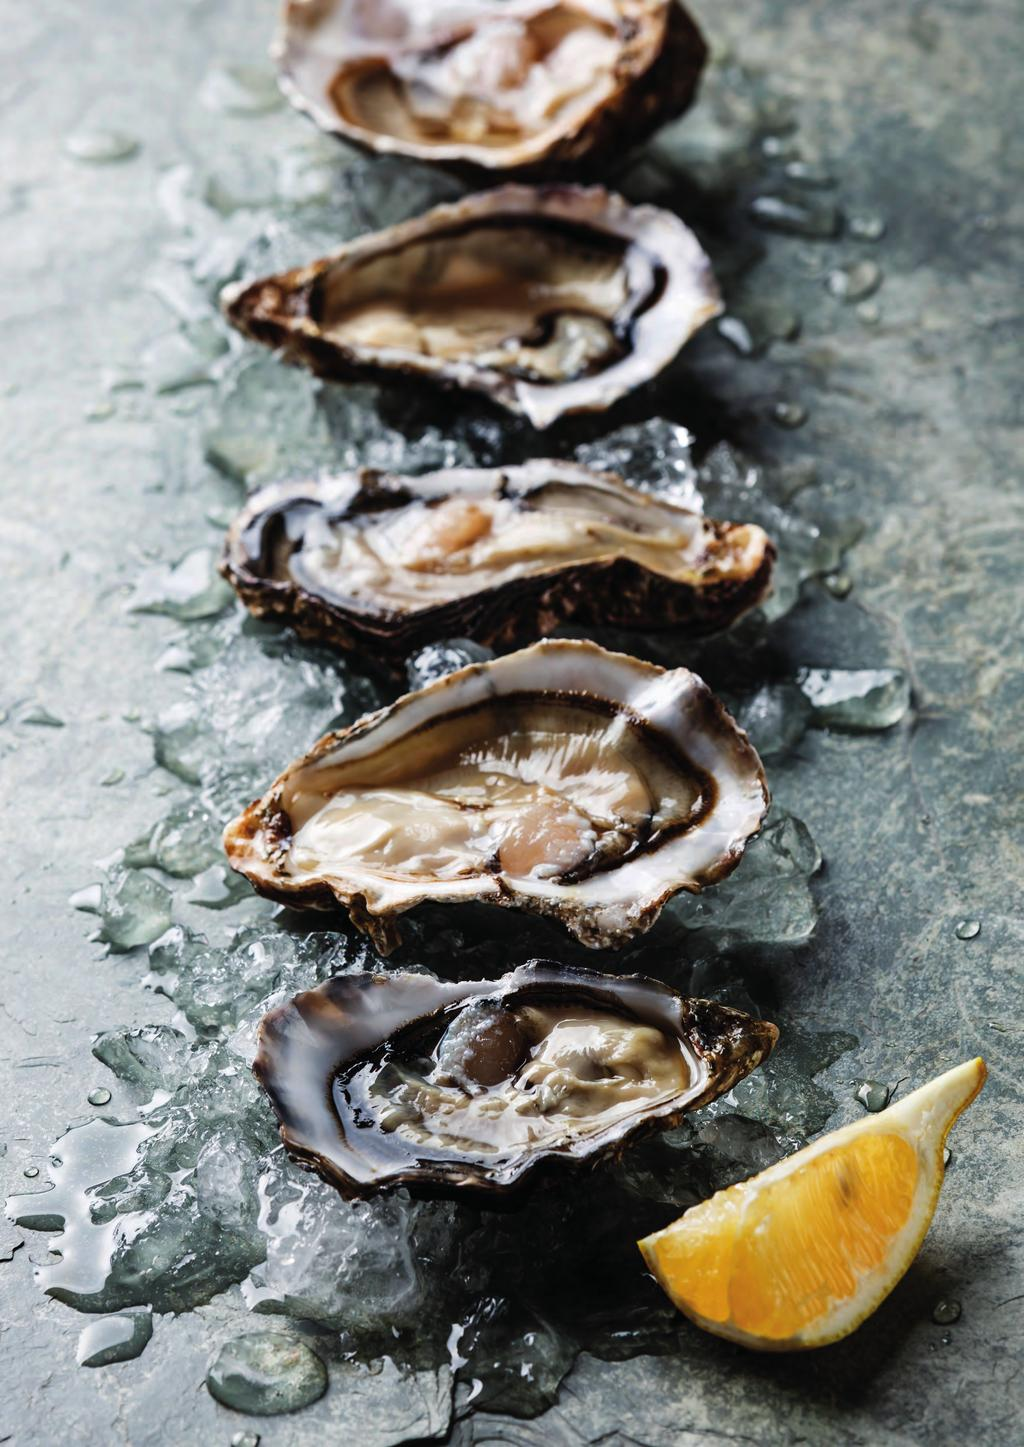 THE WORLD IS OUR OYSTER We have the great Scottish Highlands to thank for our exceptional Loch Fyne oysters.